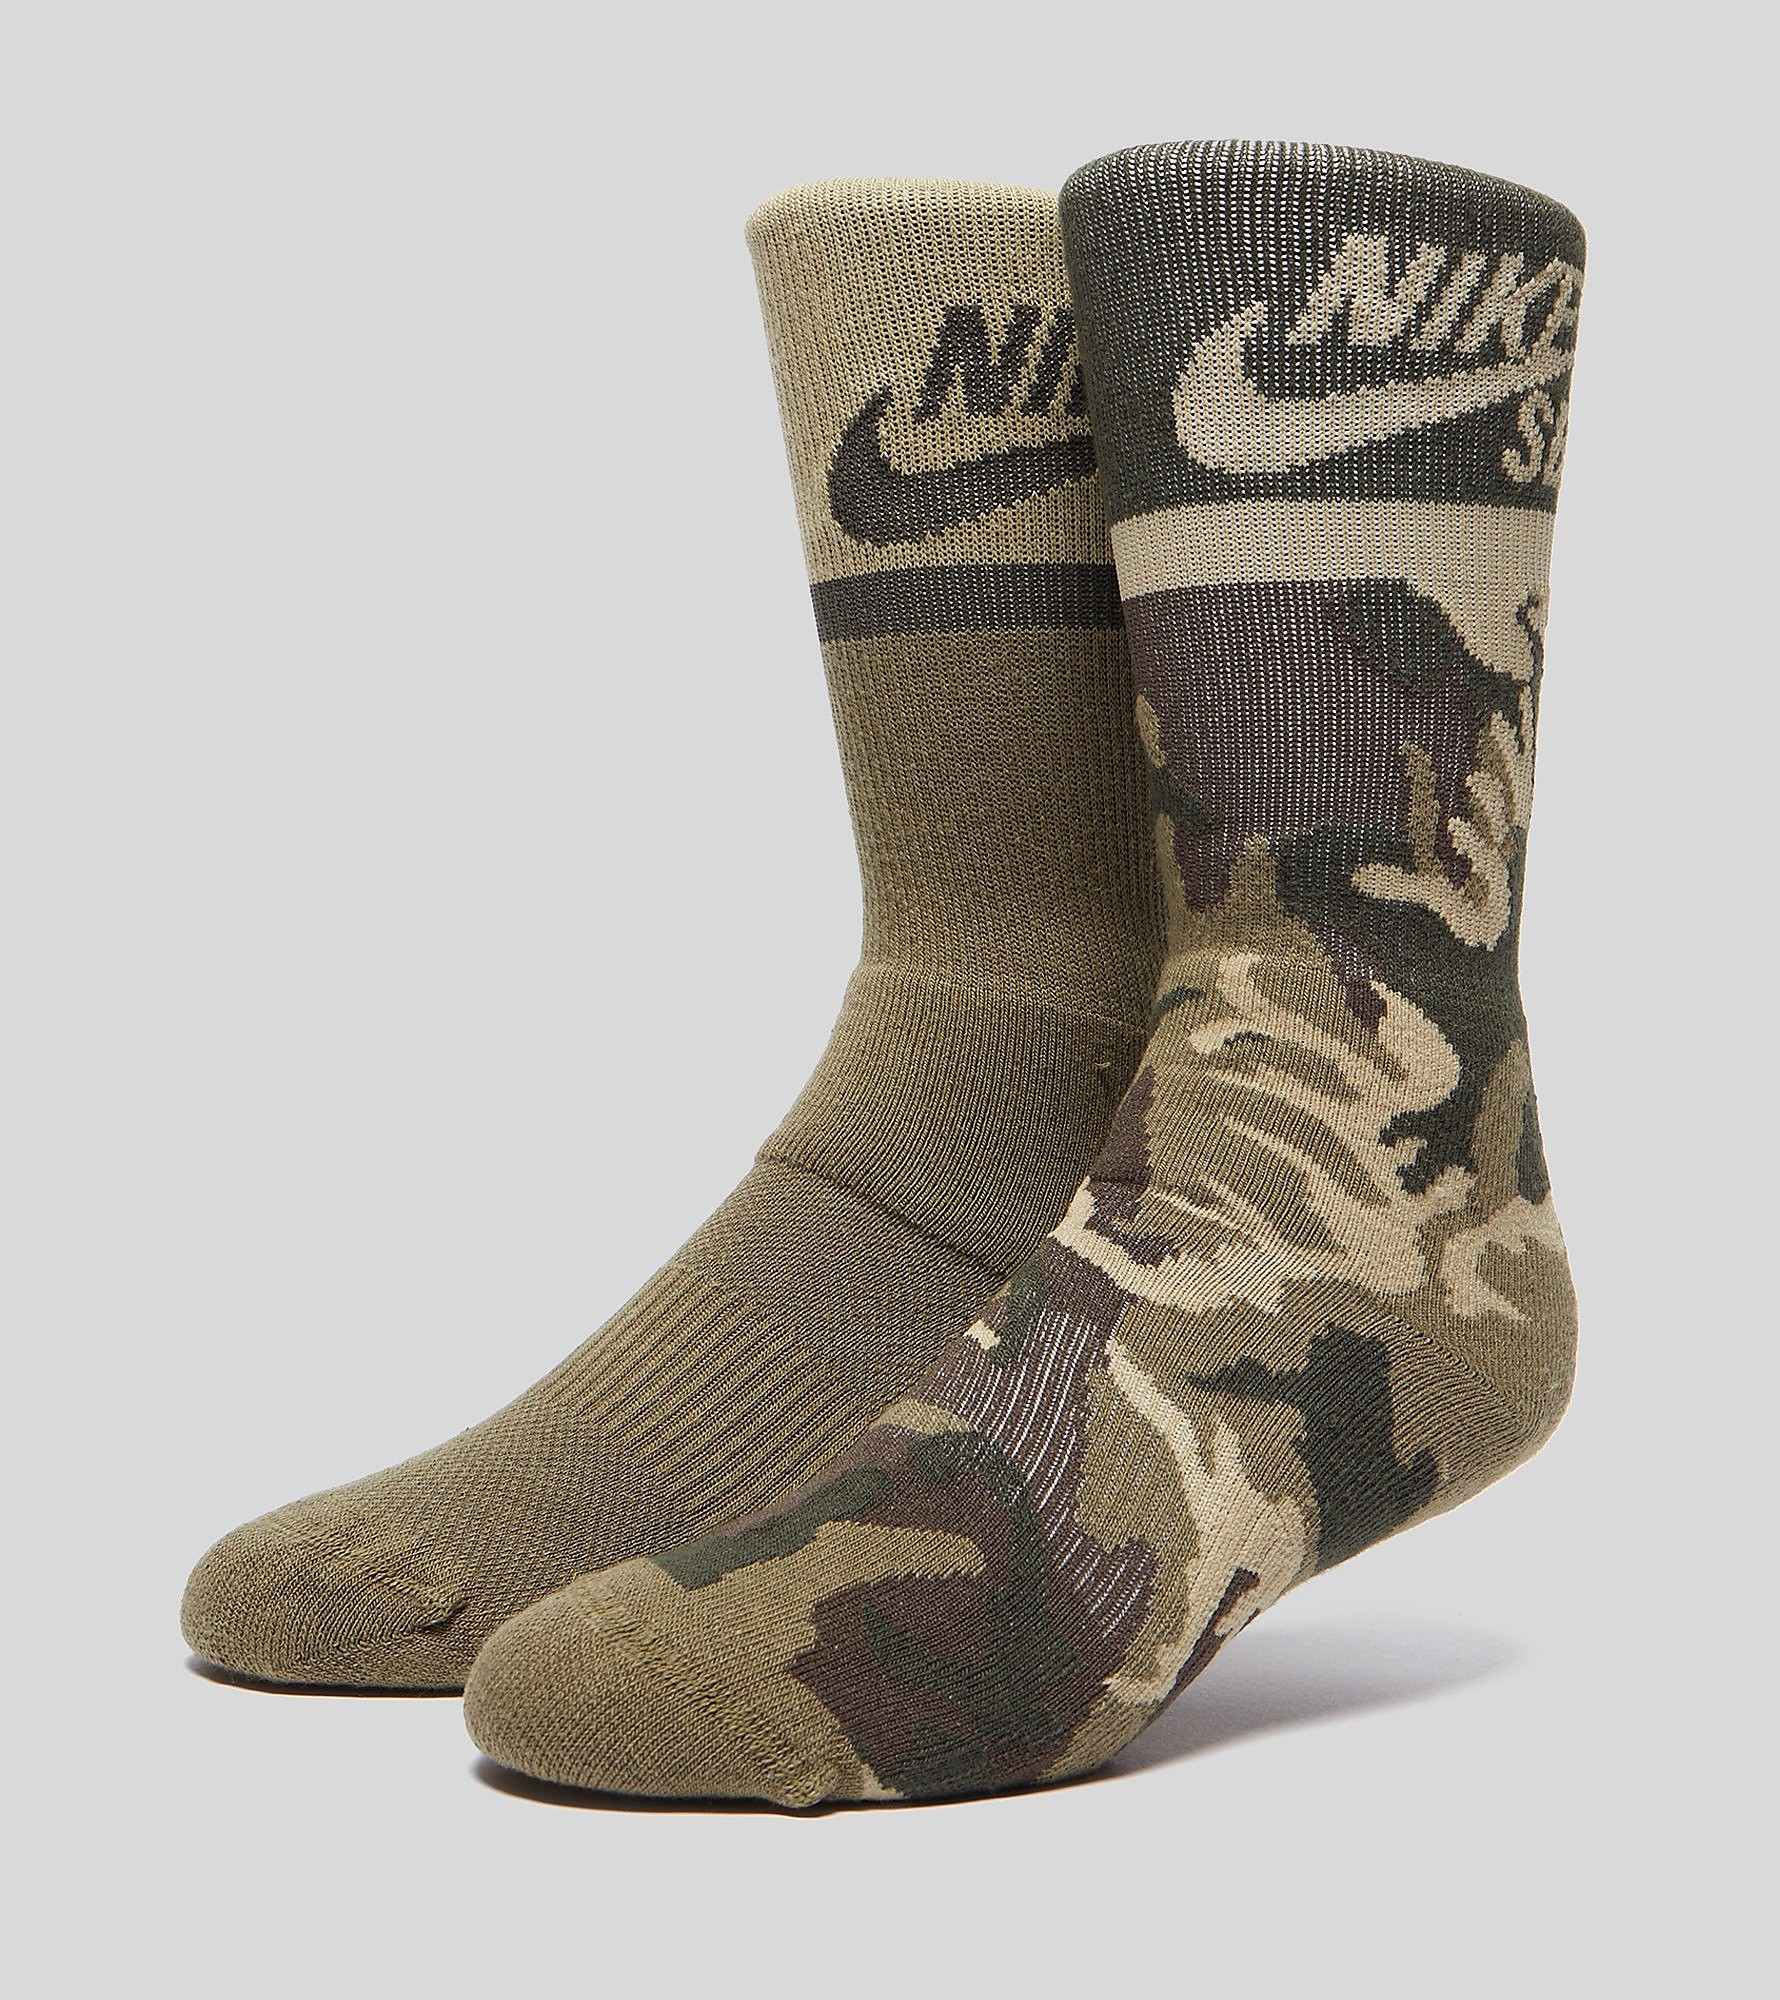 Nike SB Energy Crew 2 Pack Socks